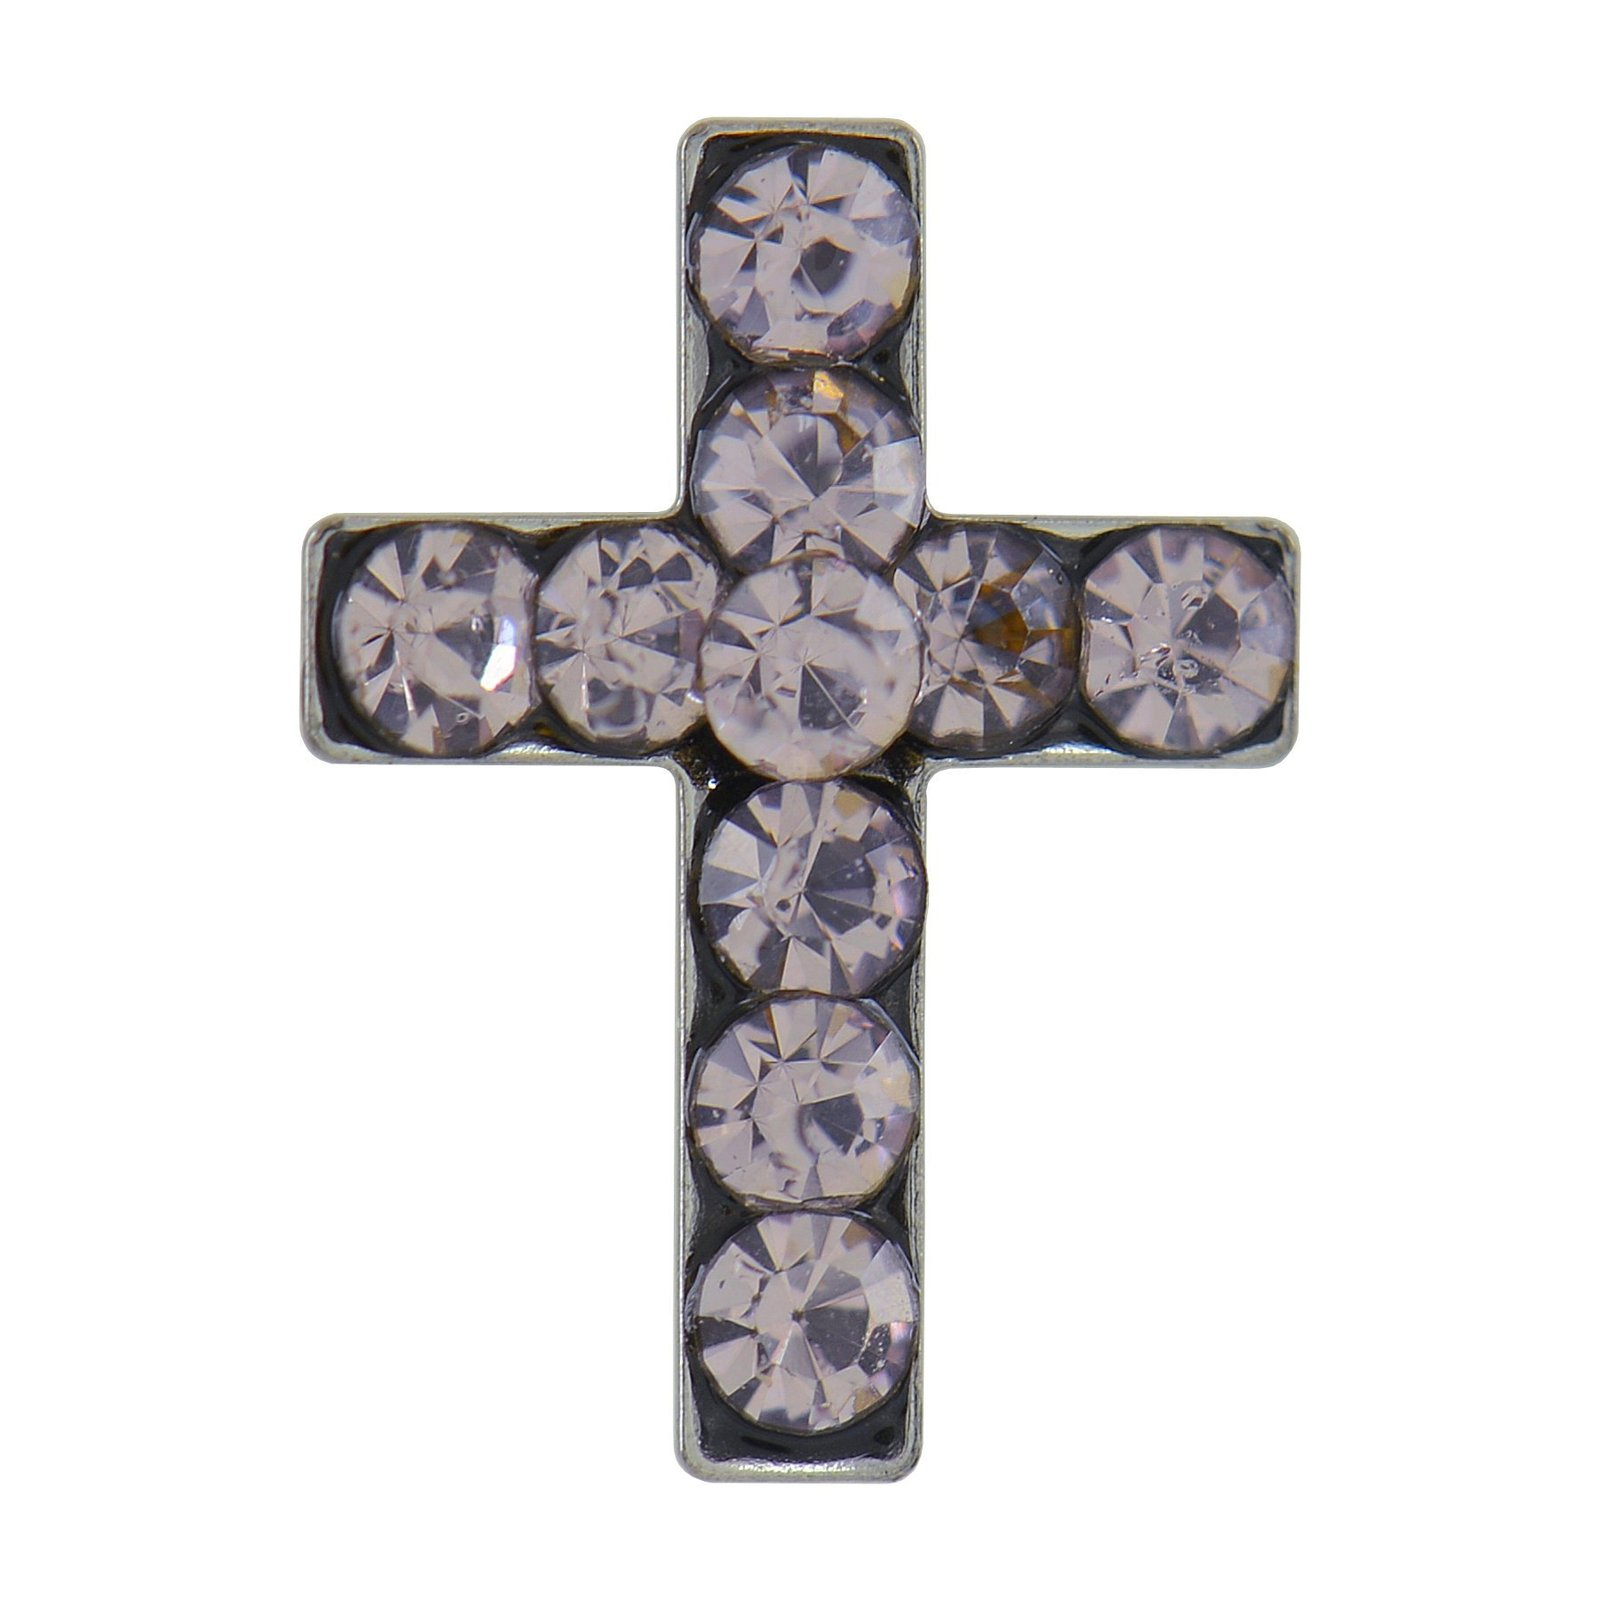 Primary image for Studex Sensitive Alexandrite Crystal Cross Stainless Steel Hypo-allergenic Stud